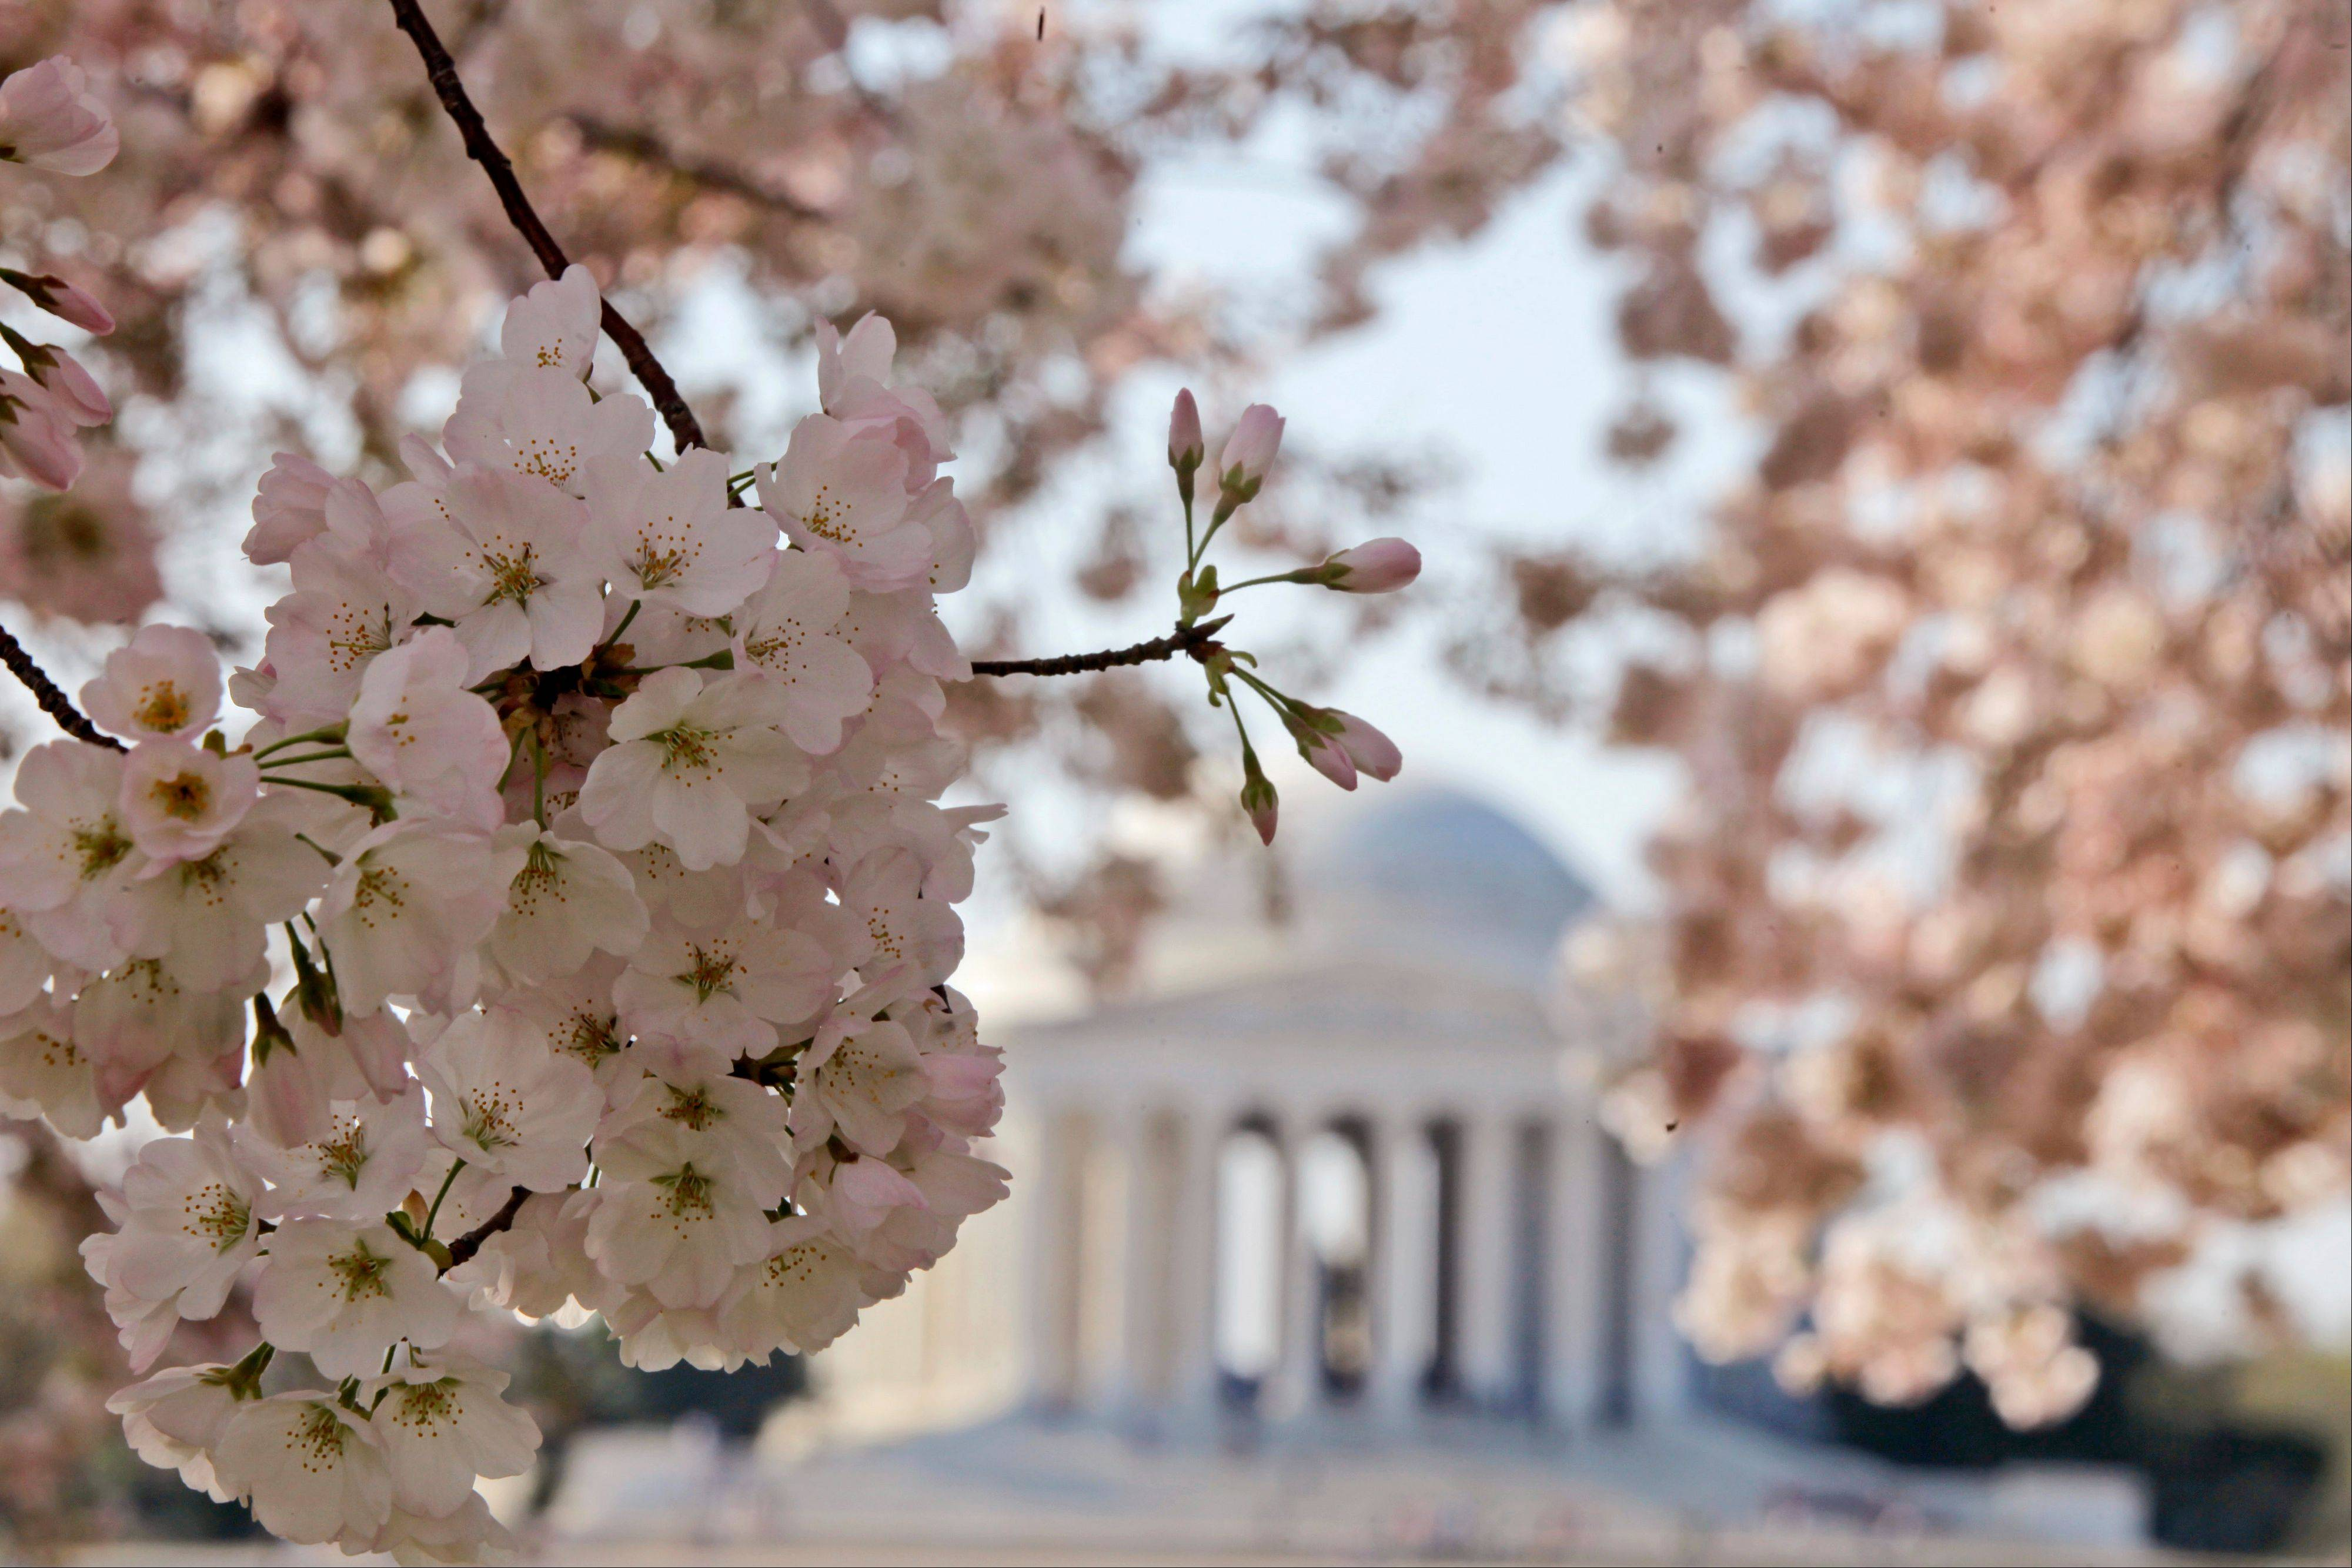 Blooming cherry blossoms frame the Jefferson Memorial on the Tidal Basin in Washington. The bloom season is one of a number around the country this spring celebrating flowers in season.